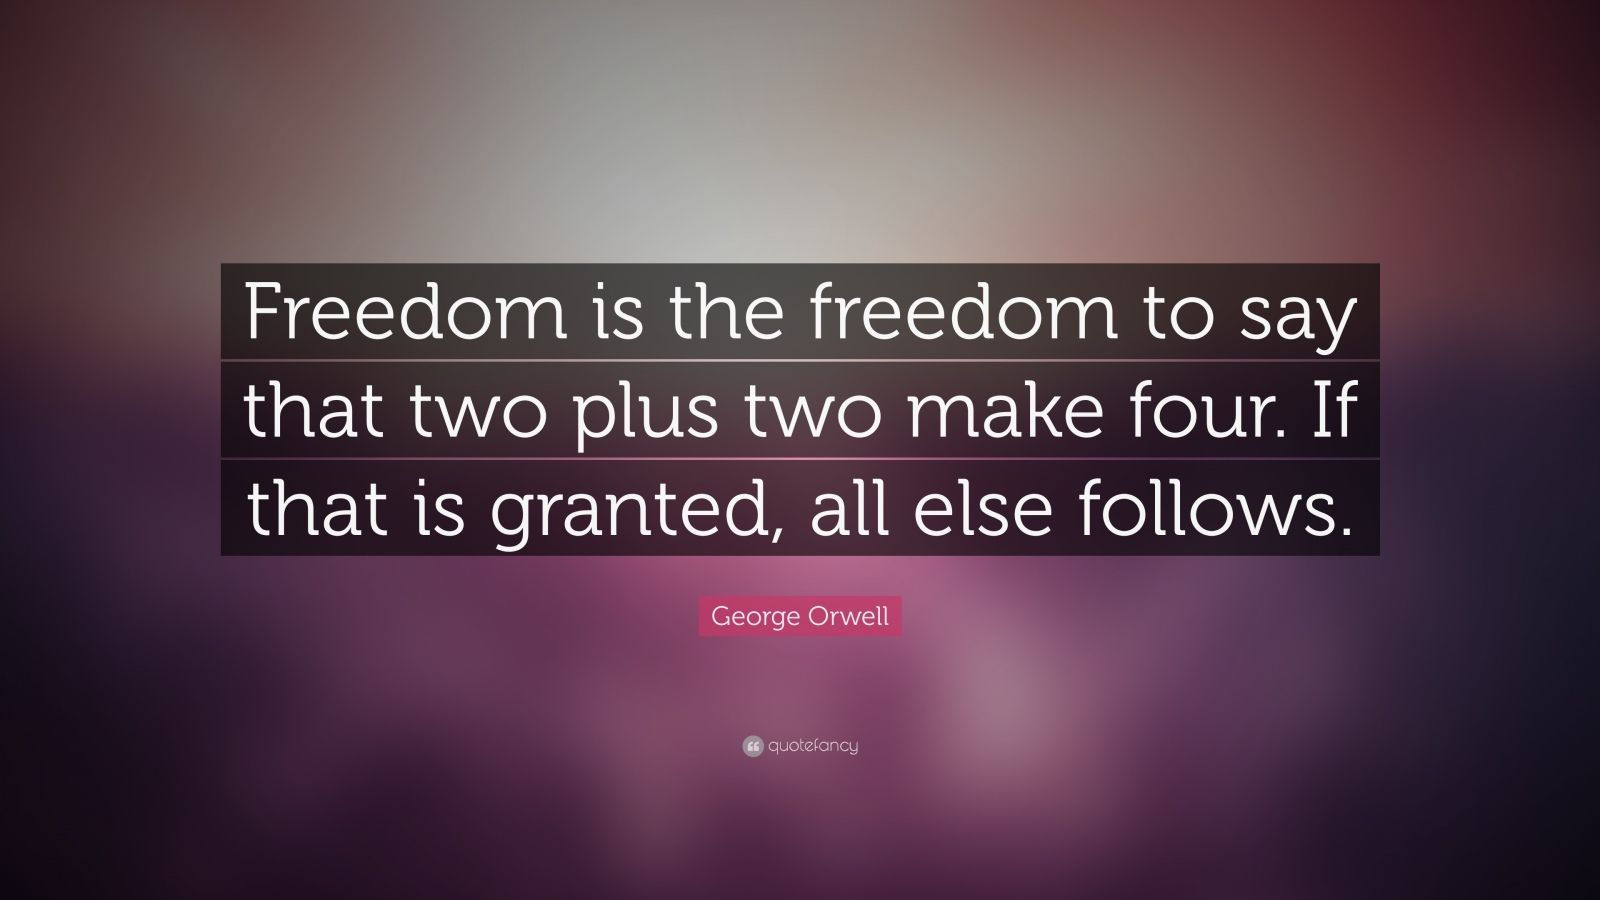 Ernest Hemingway Quote Wallpaper George Orwell Quote Freedom Is The Freedom To Say That